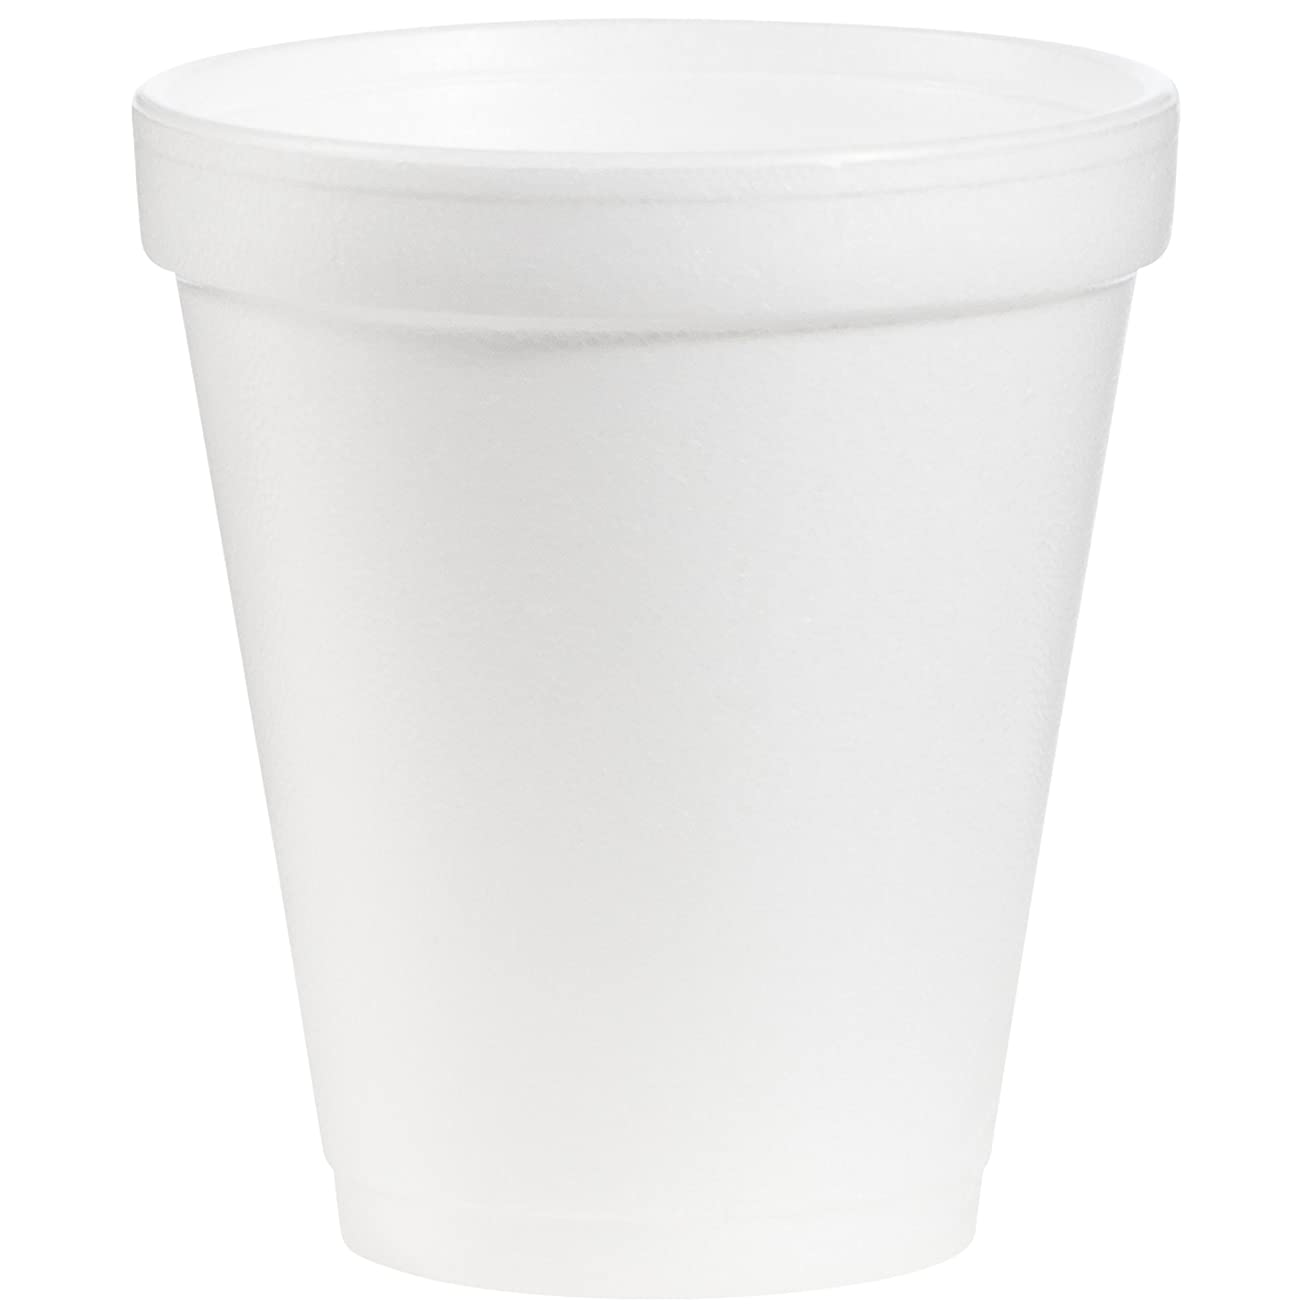 Dart 8J8 8 oz Foam Cup, 8 Series Lids (Case of 1000)